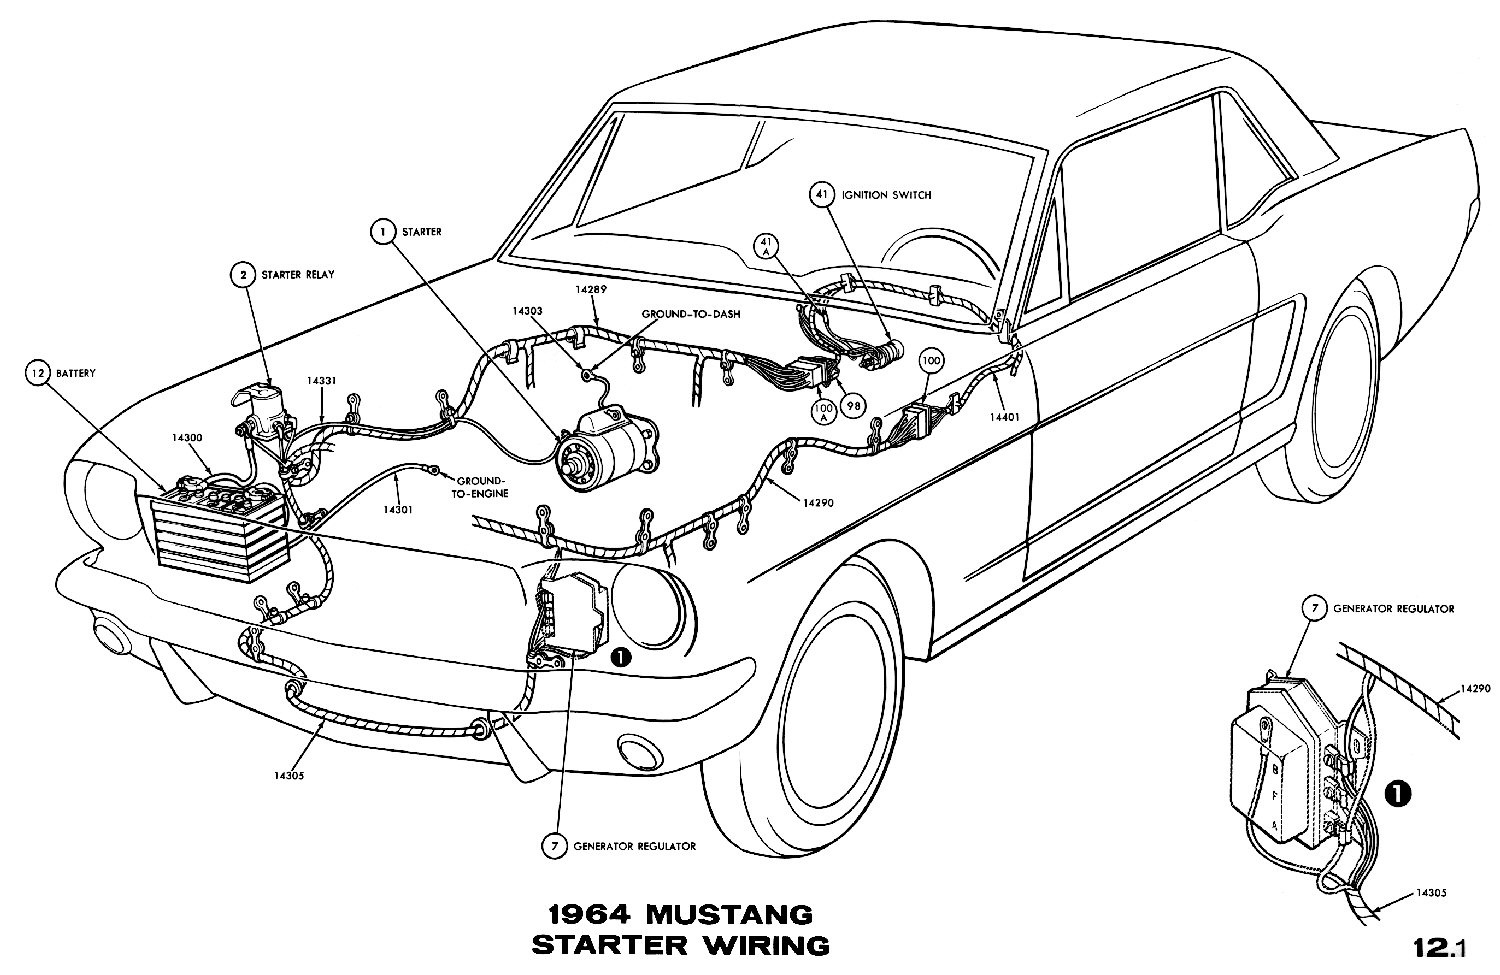 1966 Mustang Starter Solenoid Wiring Diagram 44 Ford Relay Schematic 1964d 1964 Diagrams Average Joe Restoration At Cita